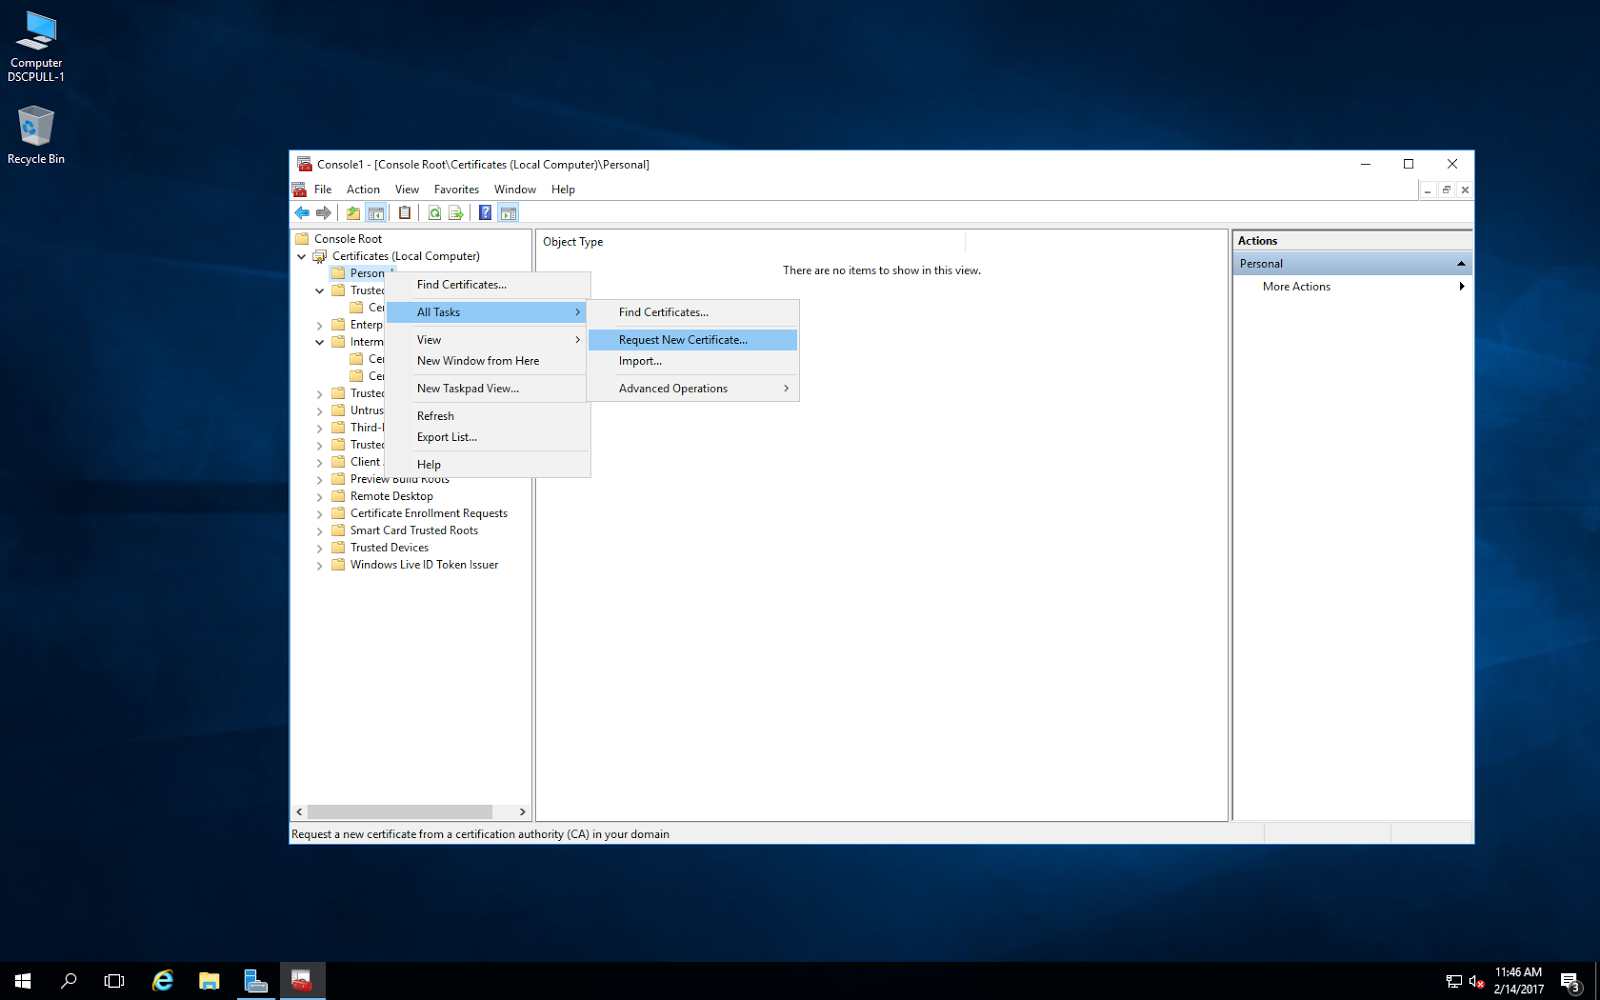 Configure Java Control Panel Settings with a Powershell Script